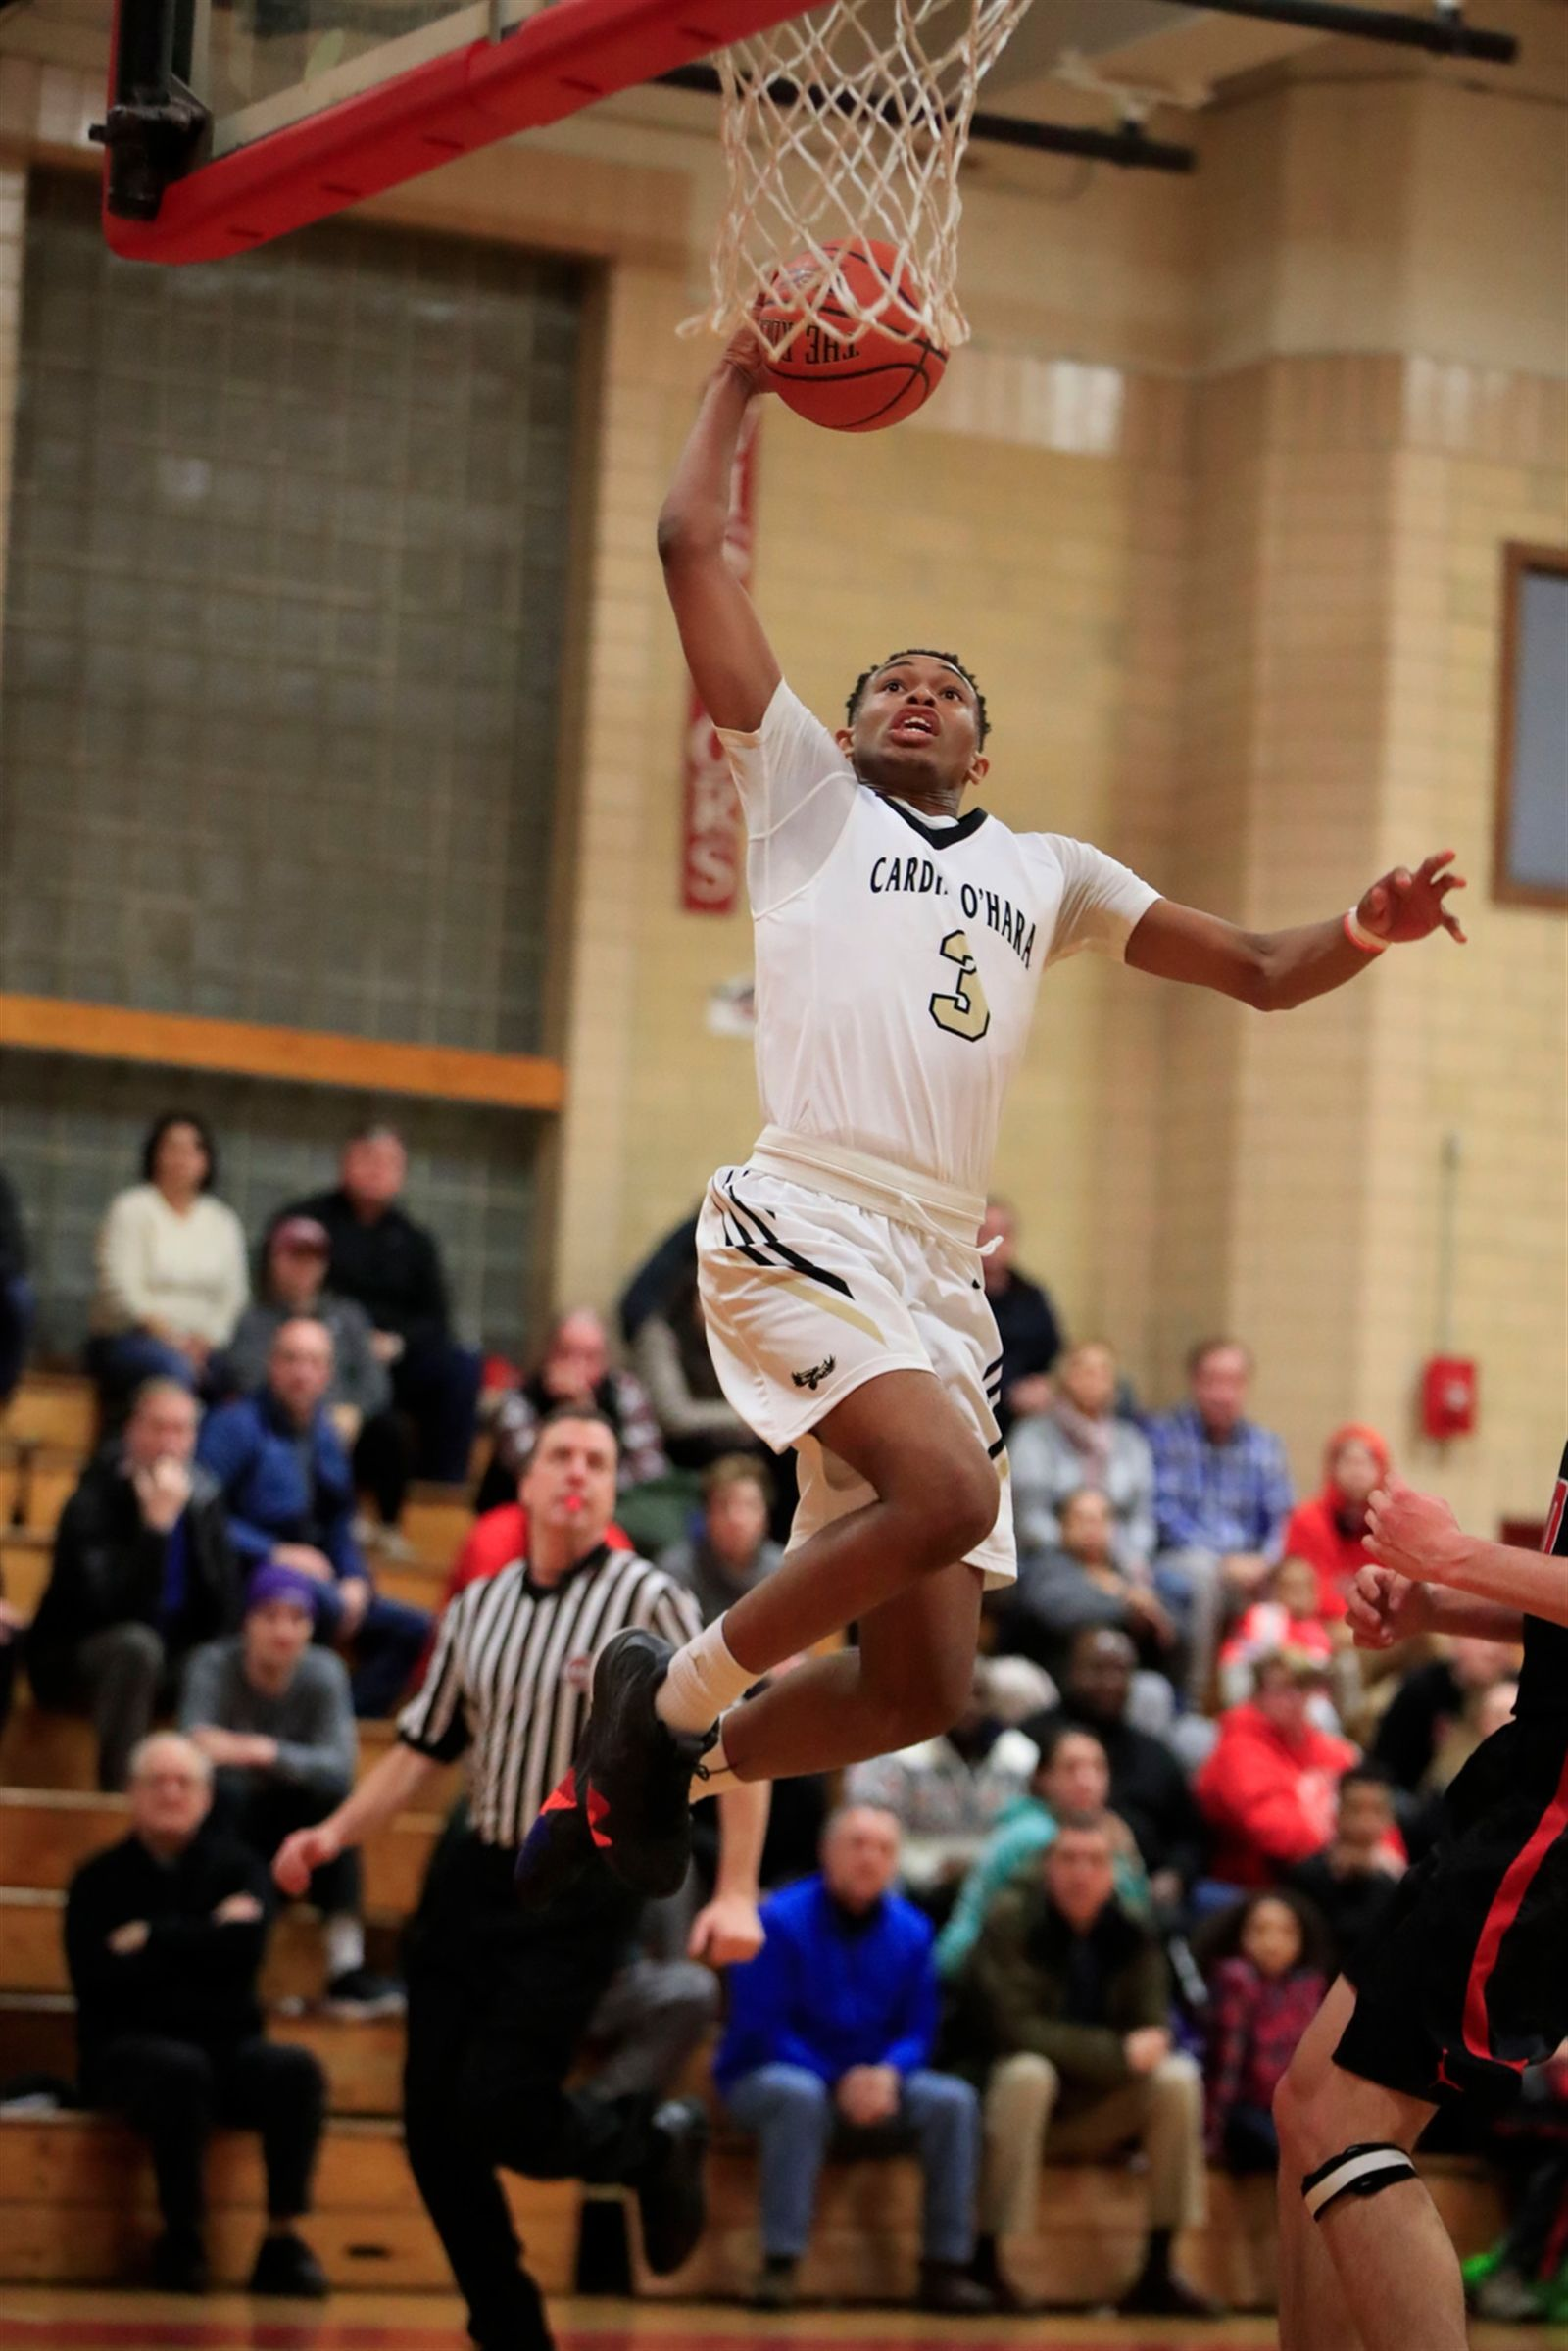 Cardinal O'Hara forward Haakim Siner dunks against St. Francis during first half action at St. Francis High School on Wednesday, Jan. 16, 2019.